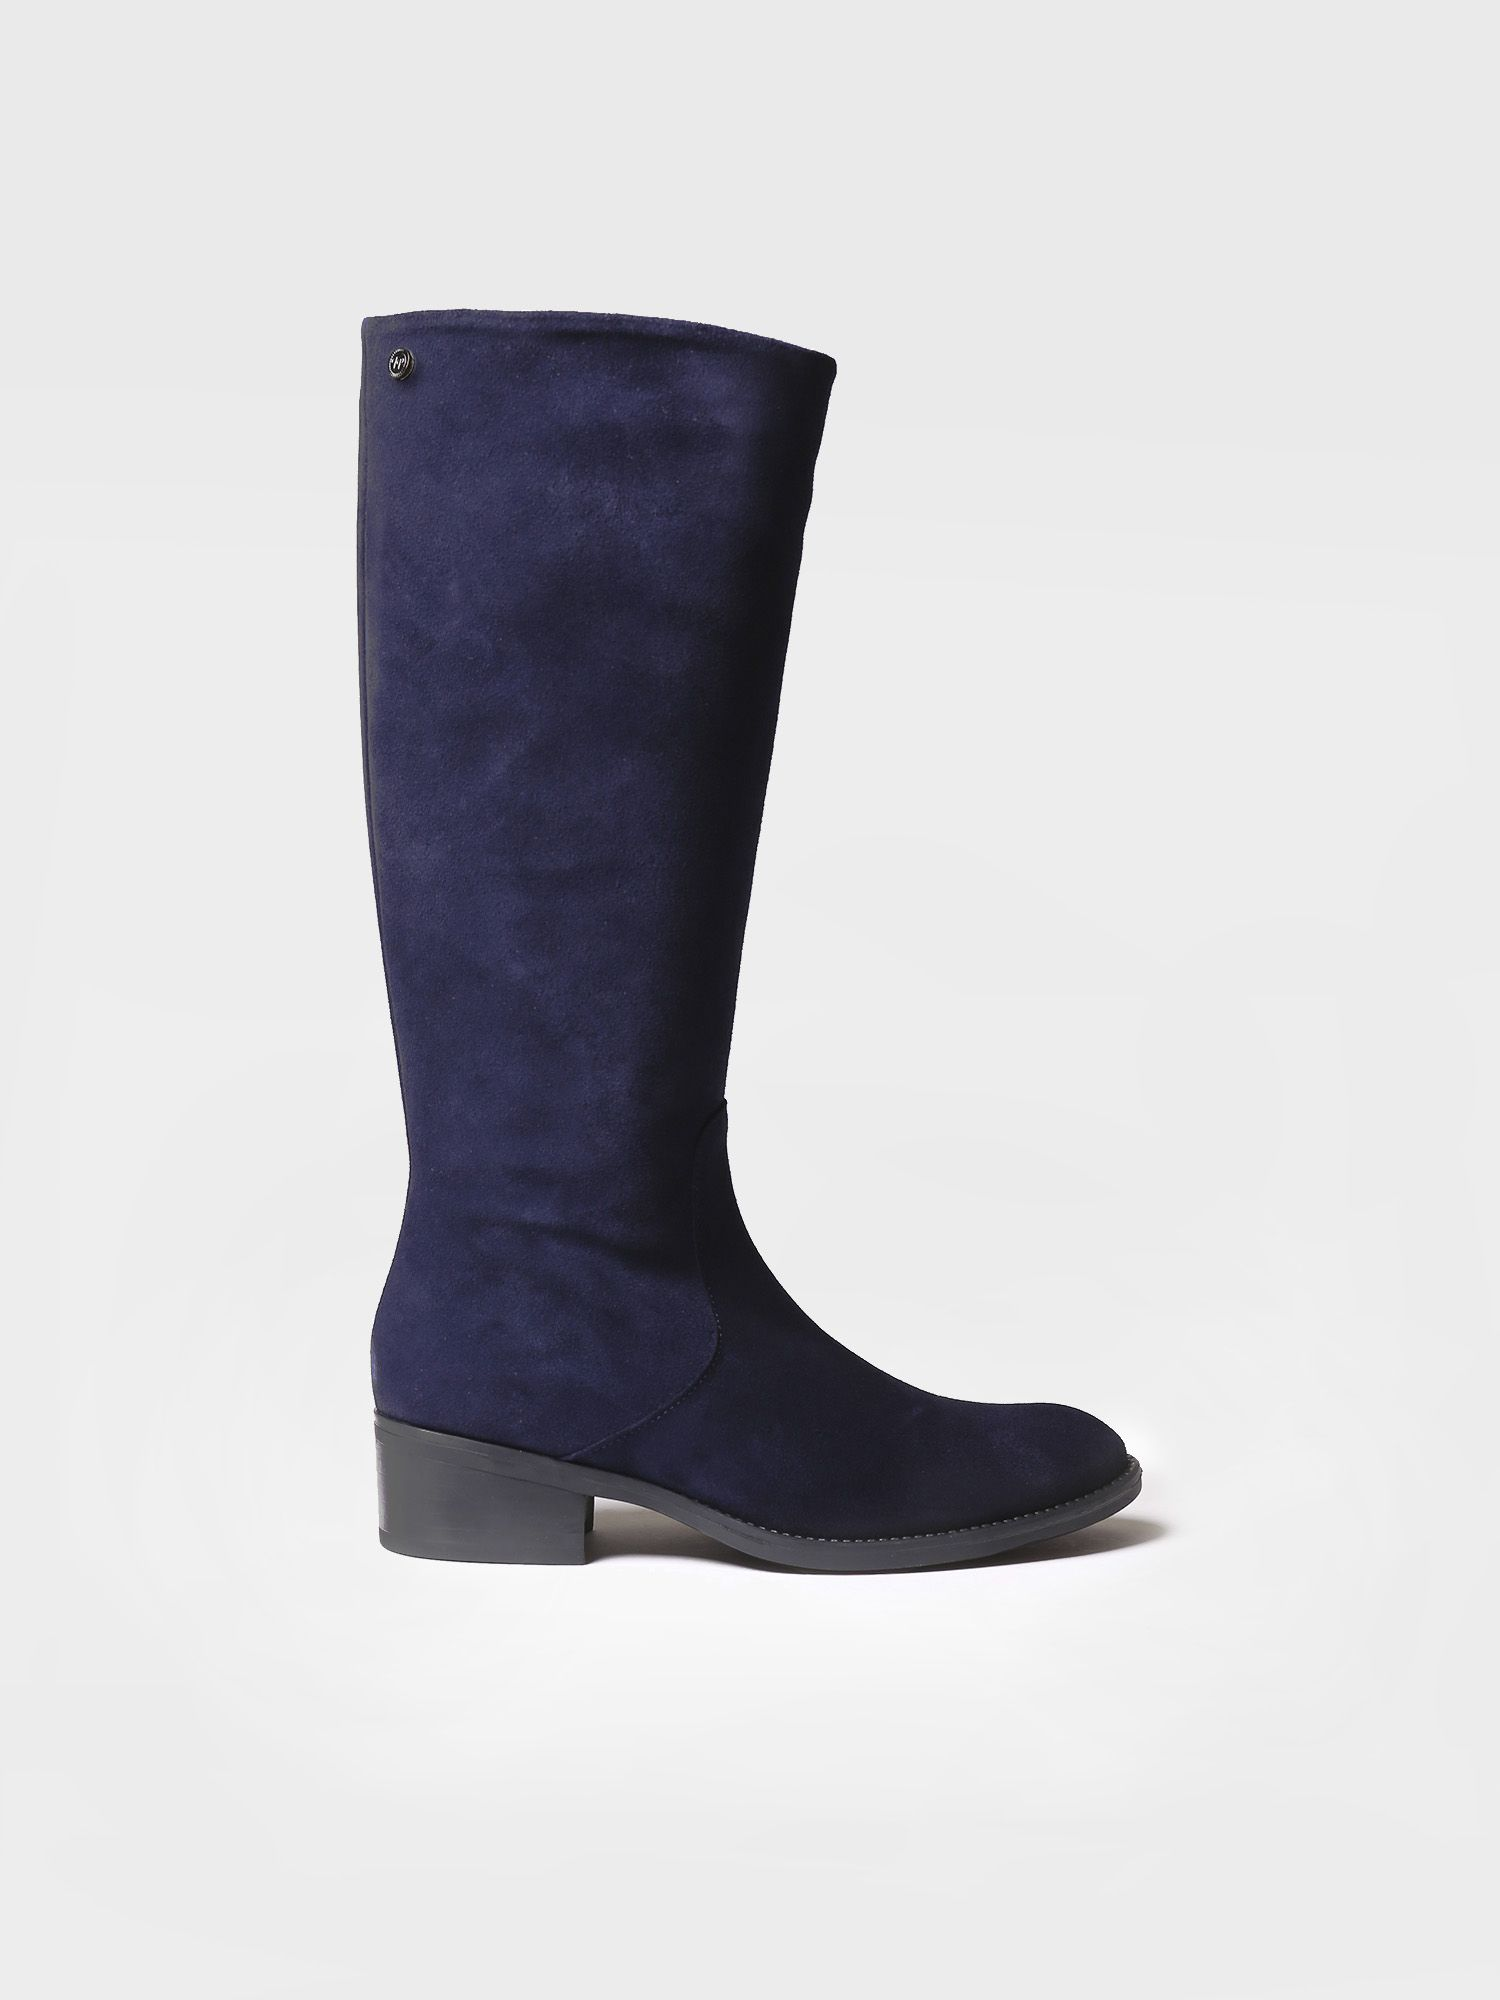 Boot for women made of suede - TIROL-SY